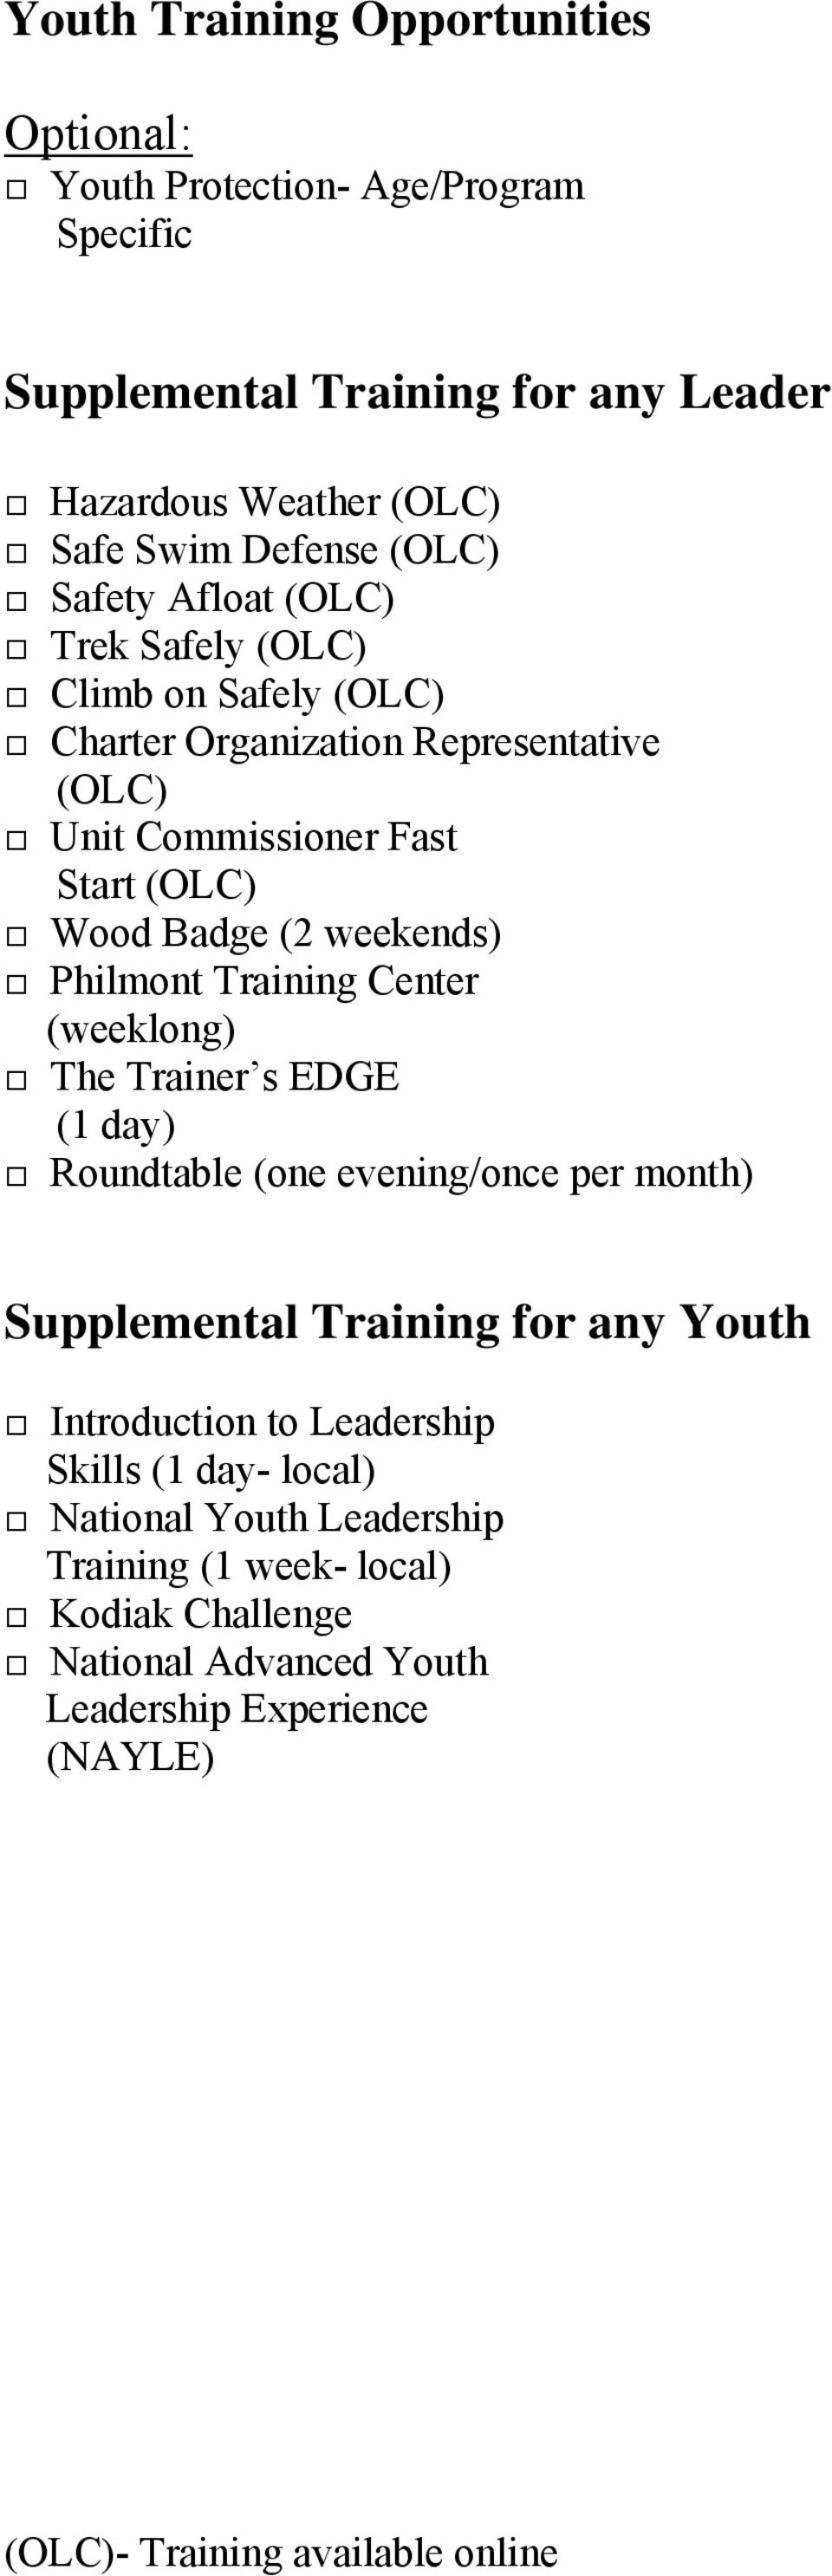 Philmont Training Center (weeklong) The Trainer s EDGE (1 day) Roundtable (one evening/once per month) Supplemental Training for any Youth Introduction to Leadership